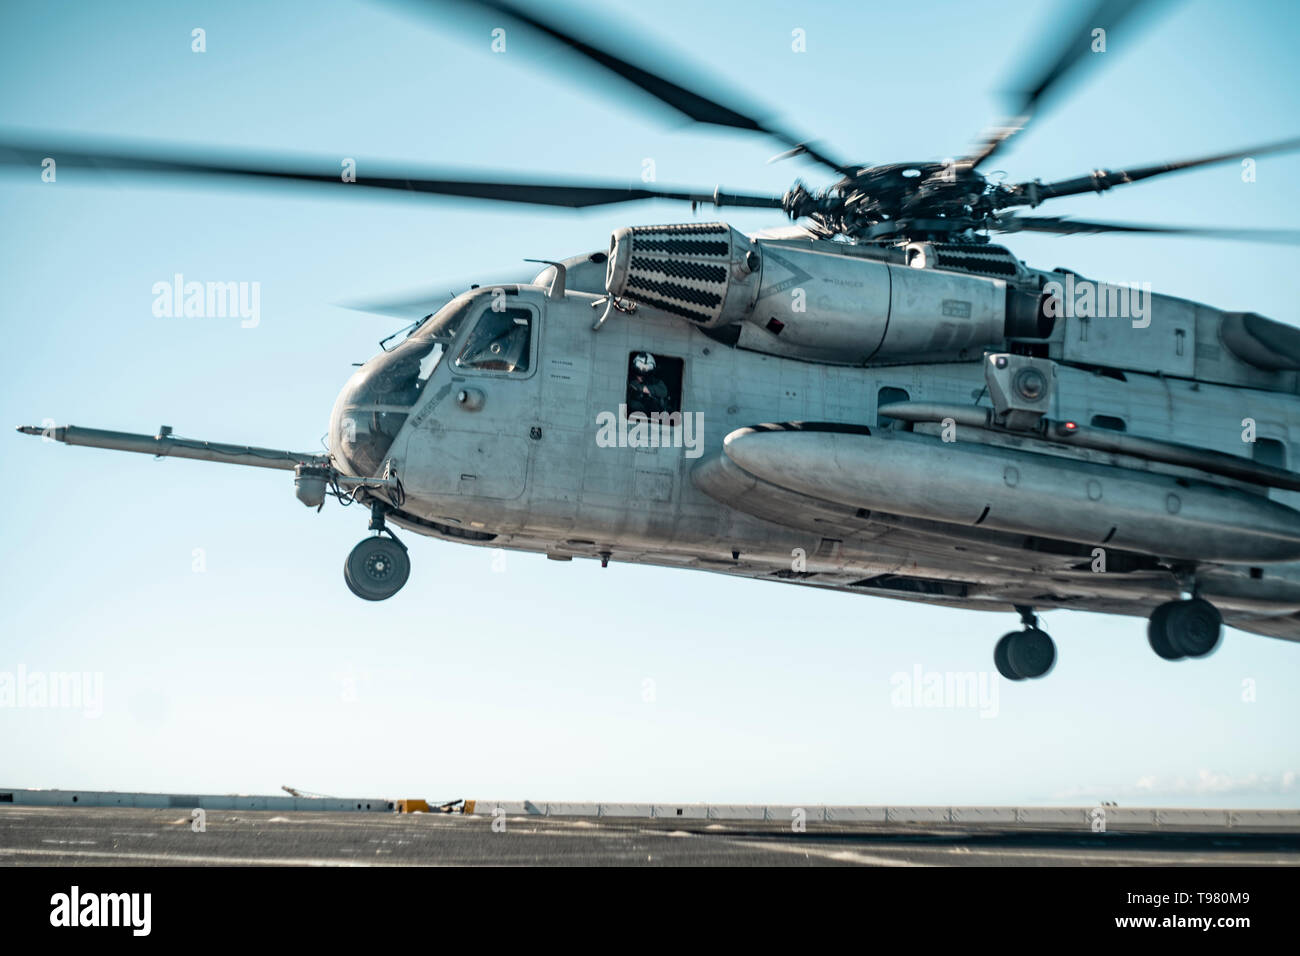 190511-M-HB658-0116 PACIFIC OCEAN (May 11, 2019) A U.S. Marine Corps CH-53E with Marine Medium Tiltrotor Squadron (VMM) 163 (Reinforced), 11th Marine Expeditionary Unit (MEU), takes off from the San Antonio-class amphibious transport dock ship USS John P. Murtha (LPD 26). The Marines and Sailors of the 11th MEU are conducting routine operations as part of the Boxer Amphibious Ready Group. (U.S. Marine Corps photo by Staff Sgt. Donald Holbert) - Stock Image